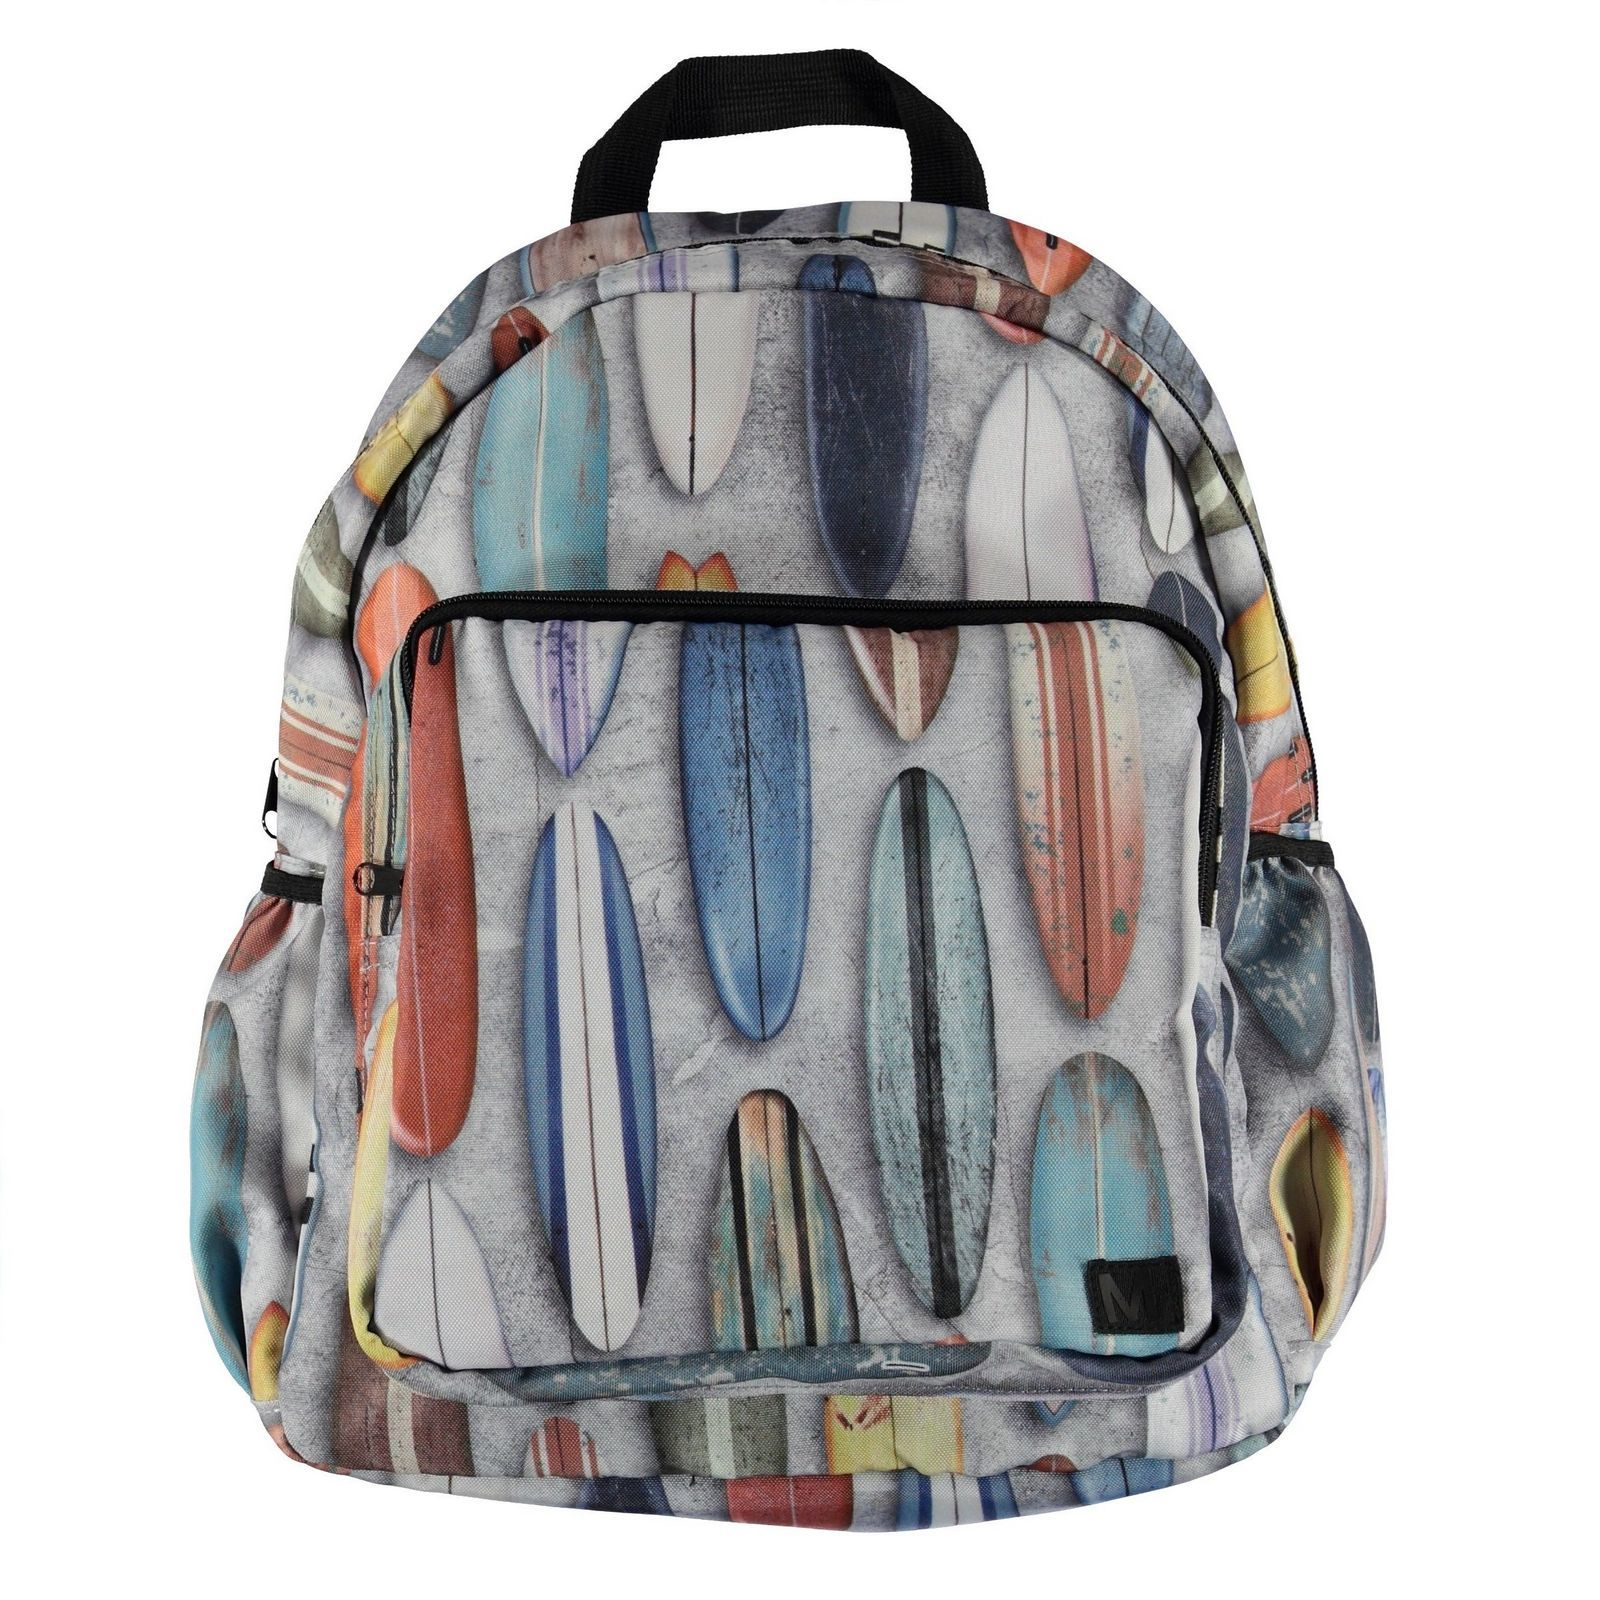 Рюкзак Molo Big backpack Surf